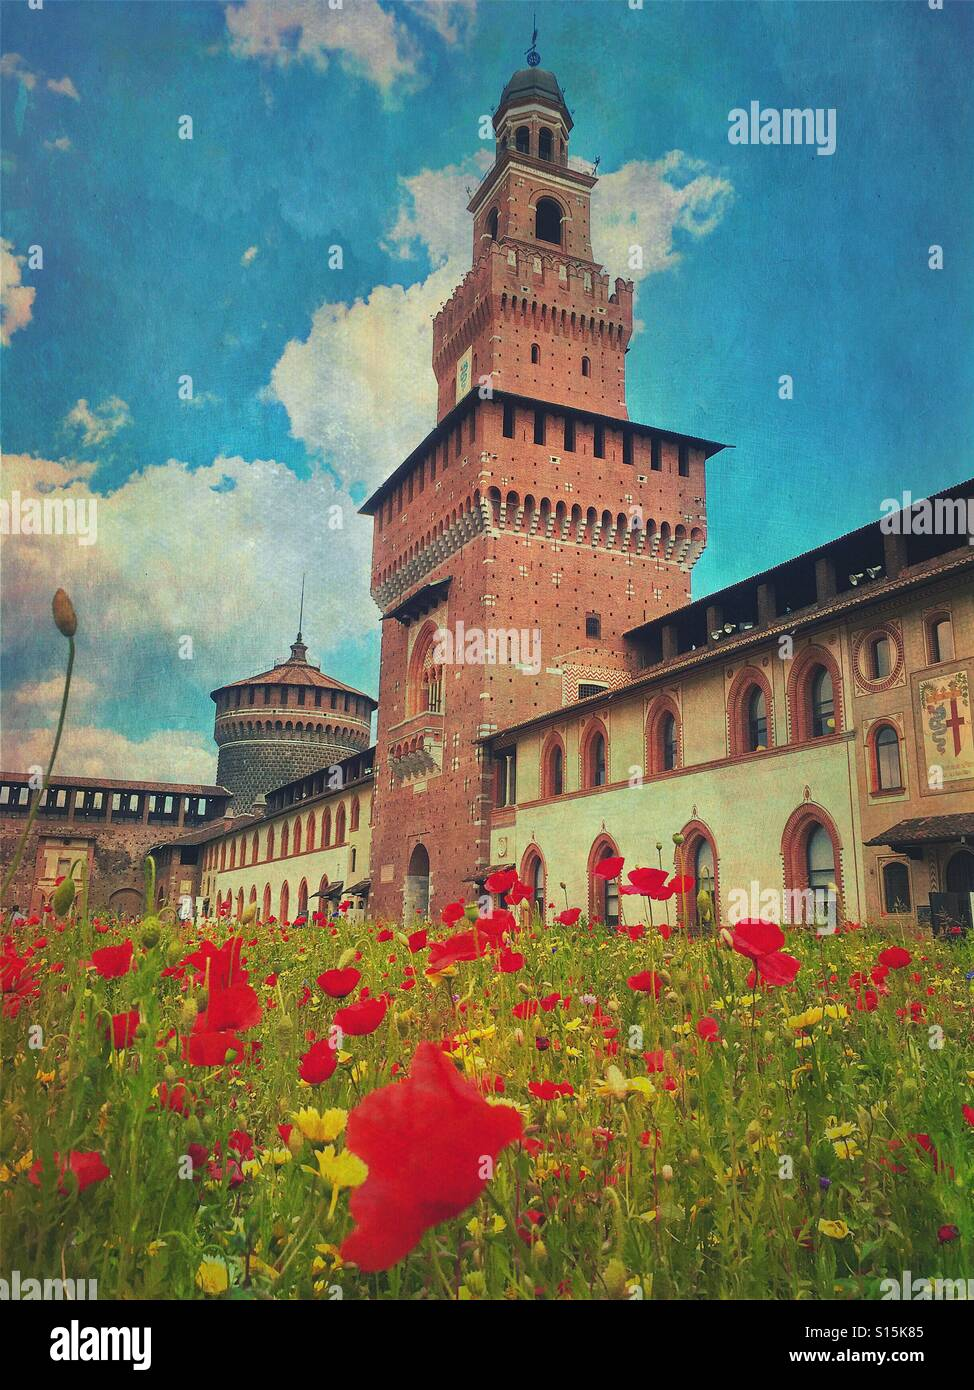 View of the beautiful Sforza Castle in Milan, Italy, with red poppy flower field in the foreground. Vintage paper Stock Photo